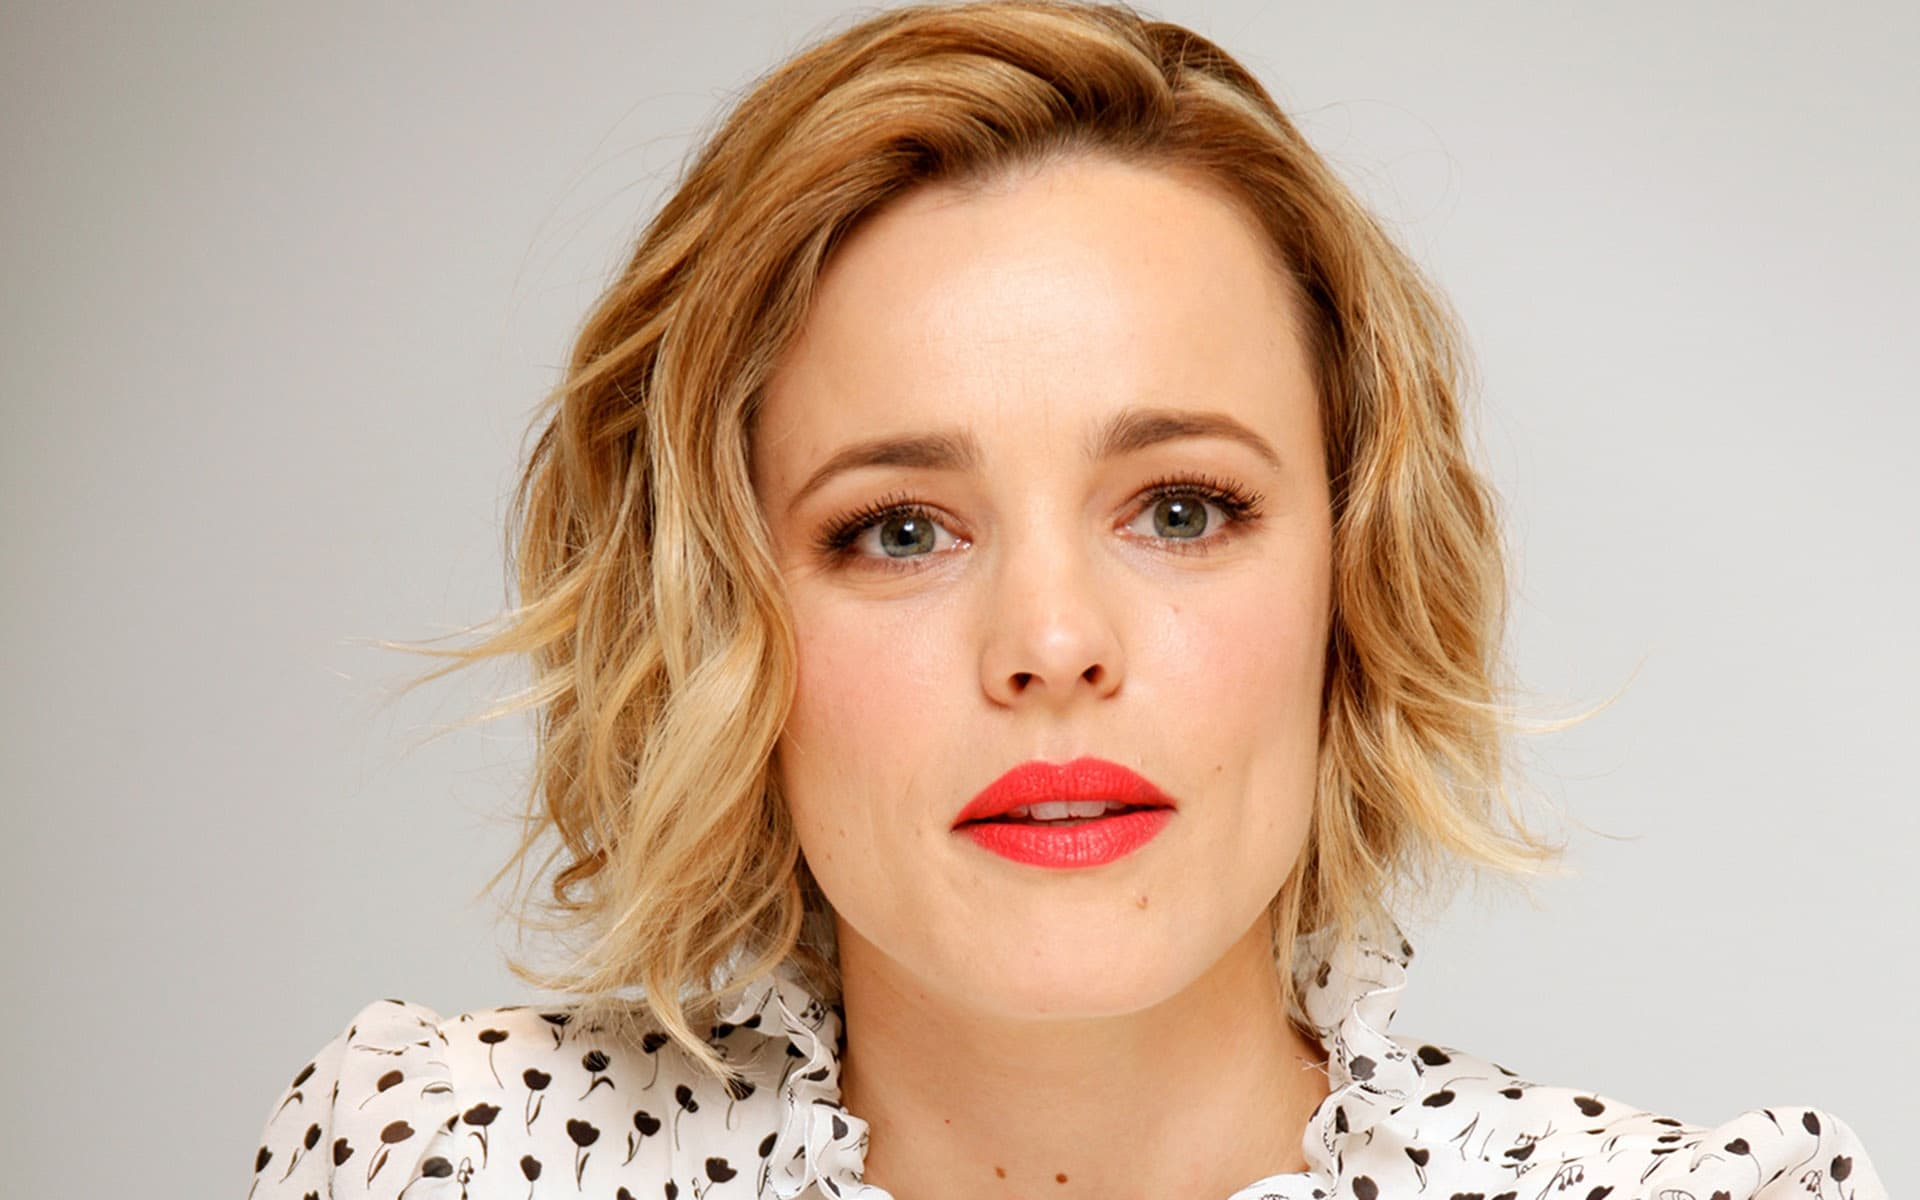 Sport Cars Wallpapers With Girls Rachel Mcadams Wallpapers Hd Images Photos High Quality